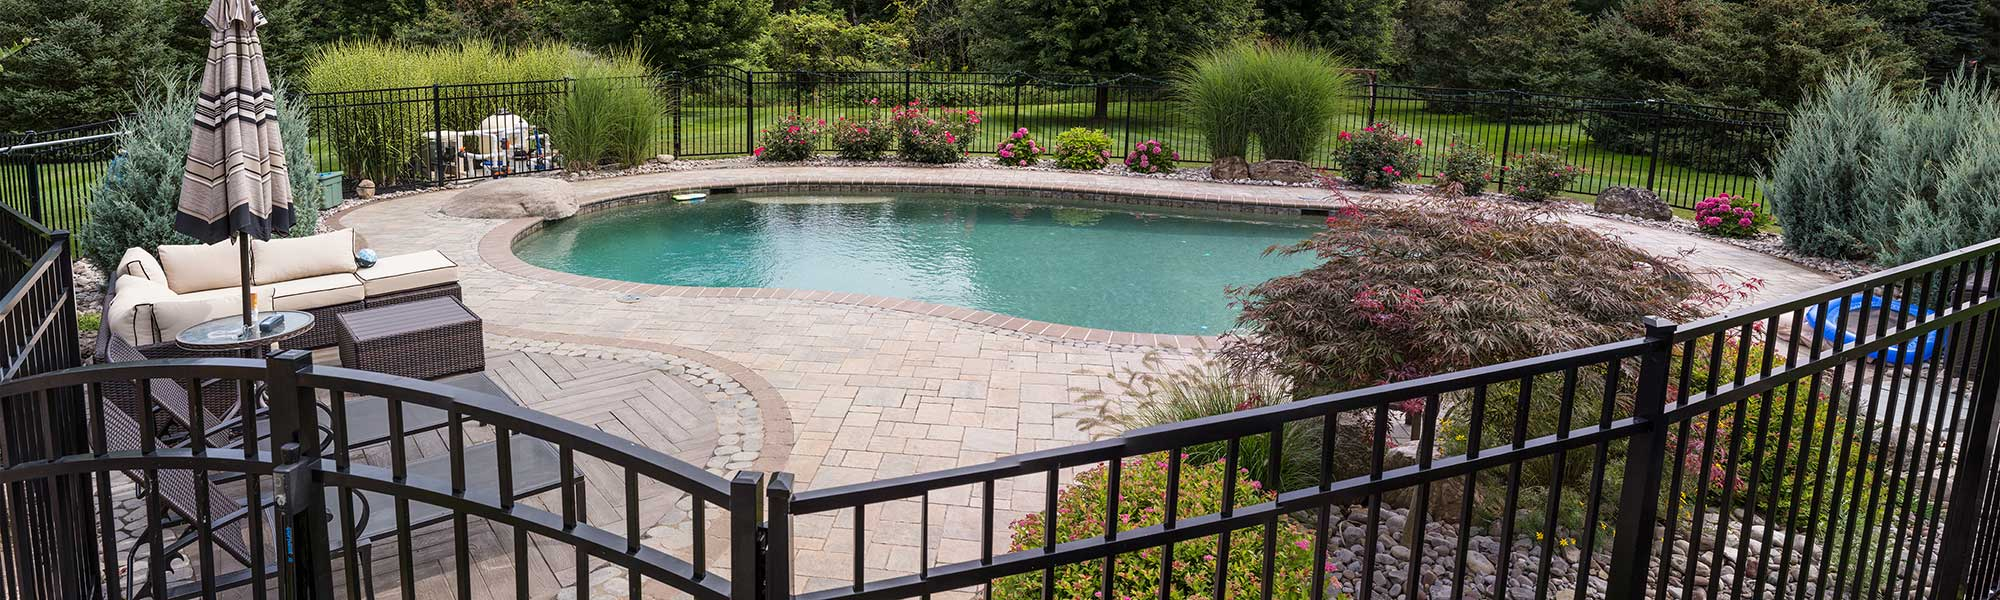 Gorgeous pool landscaping and hardscaping by Graf's lawn & Landscaping